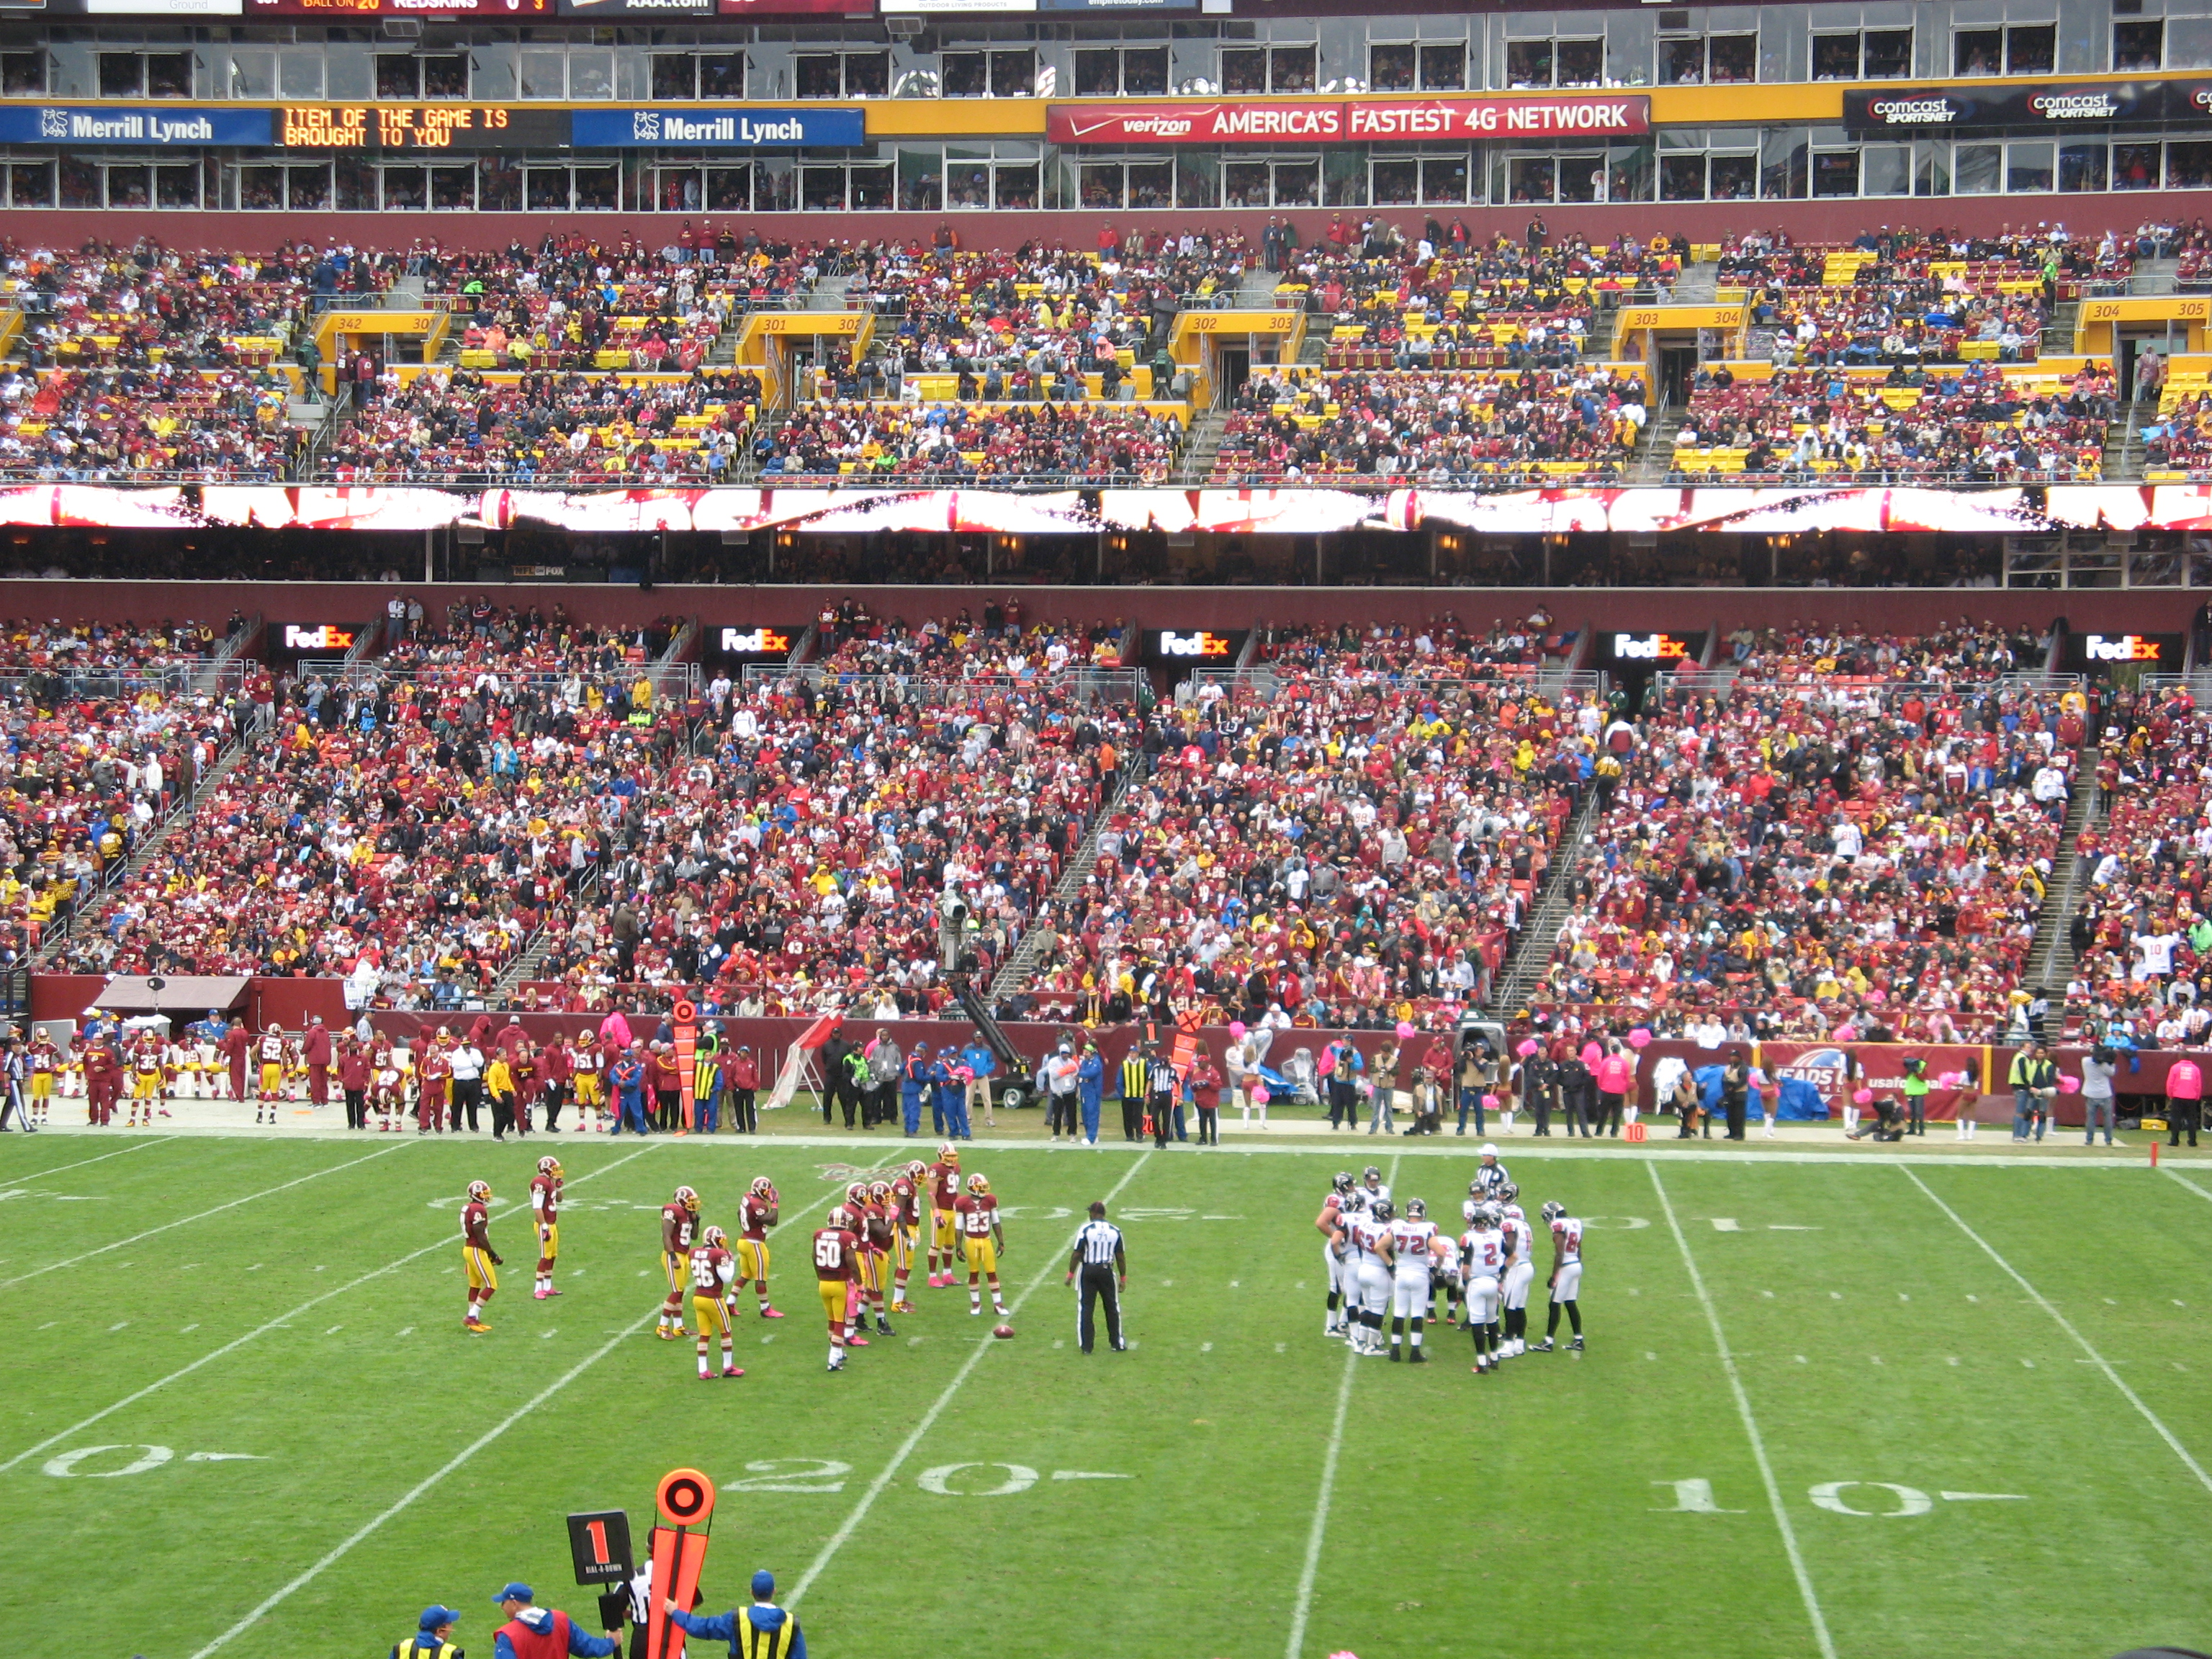 New File:Washington Redskins Vs Atlanta Falcons 07.10.2012 FedEx 010.JPG  hot sale